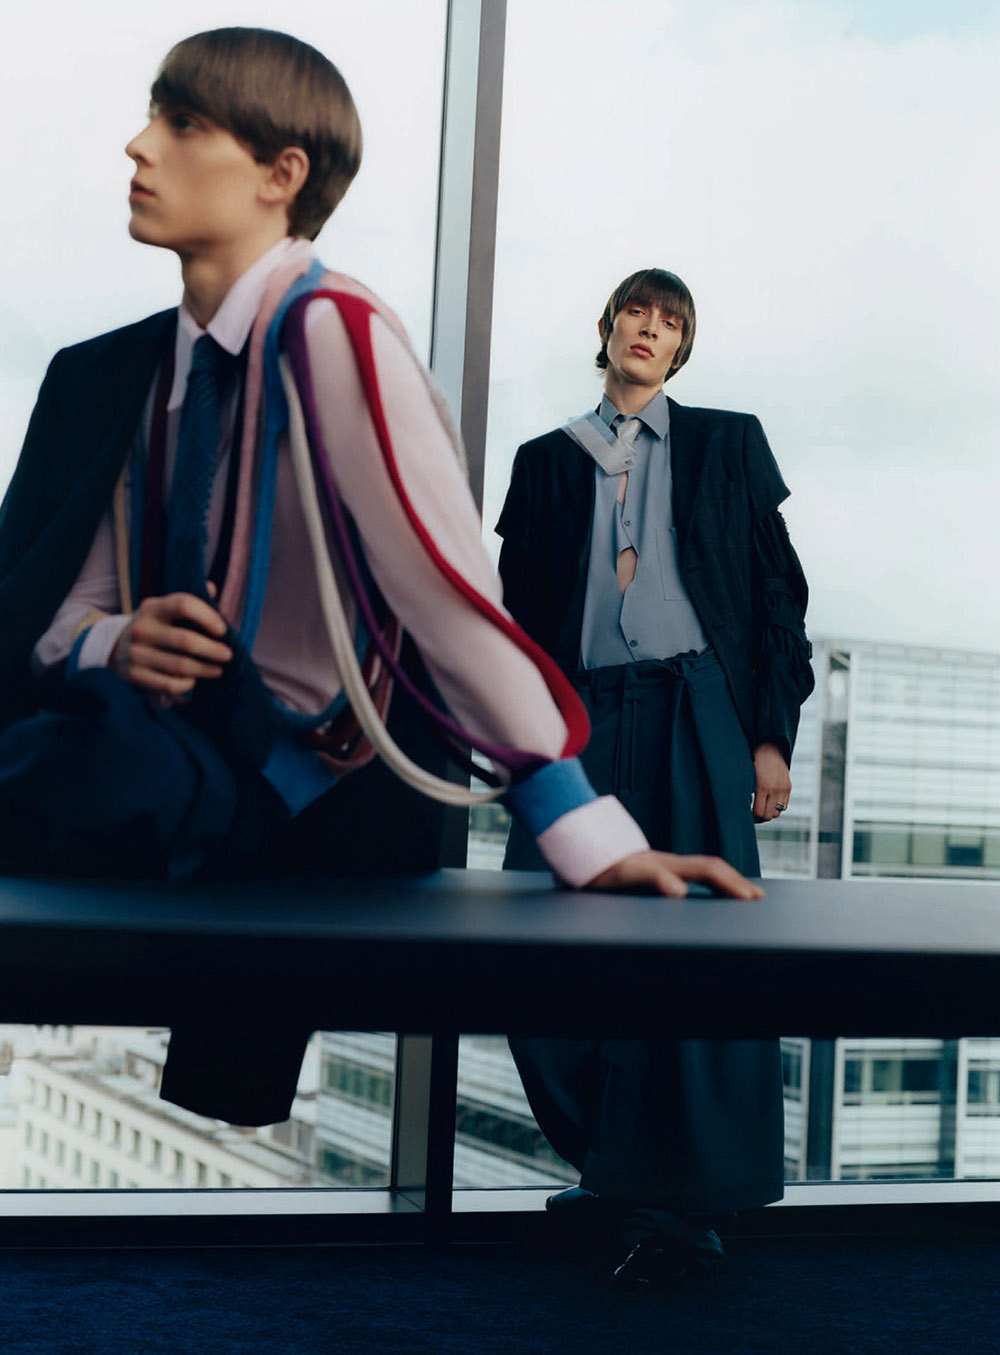 Maikls Mihelsons and Serge Sergeev by Greg Lin Jiajie for GQ Style China Spring Summer 2020